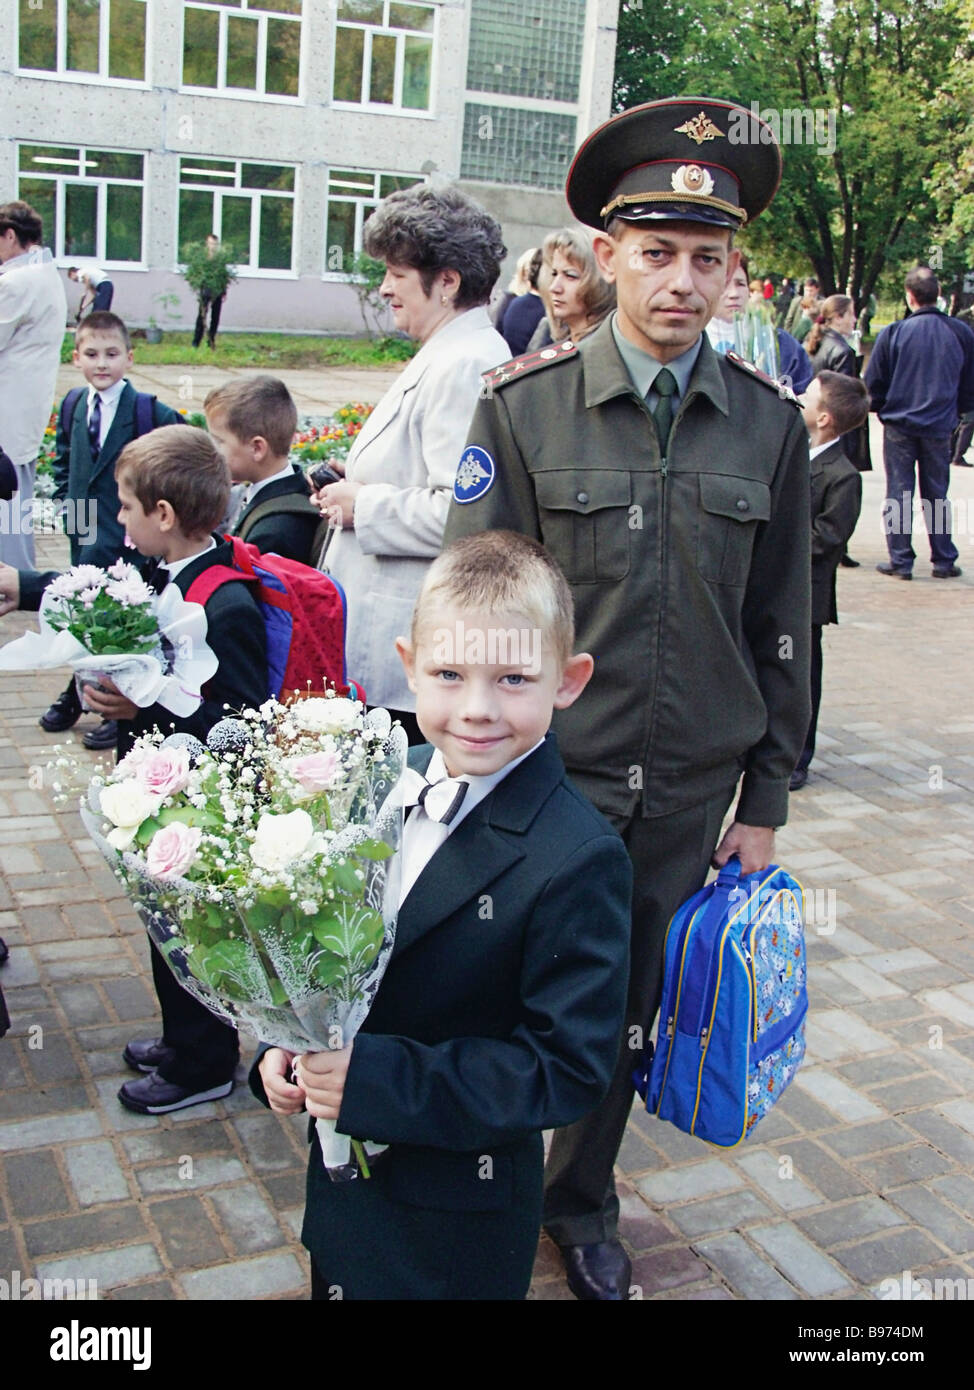 As schoolboy at school No 23 in Balashikha with his father an officer on the first day of the school year - Stock Image